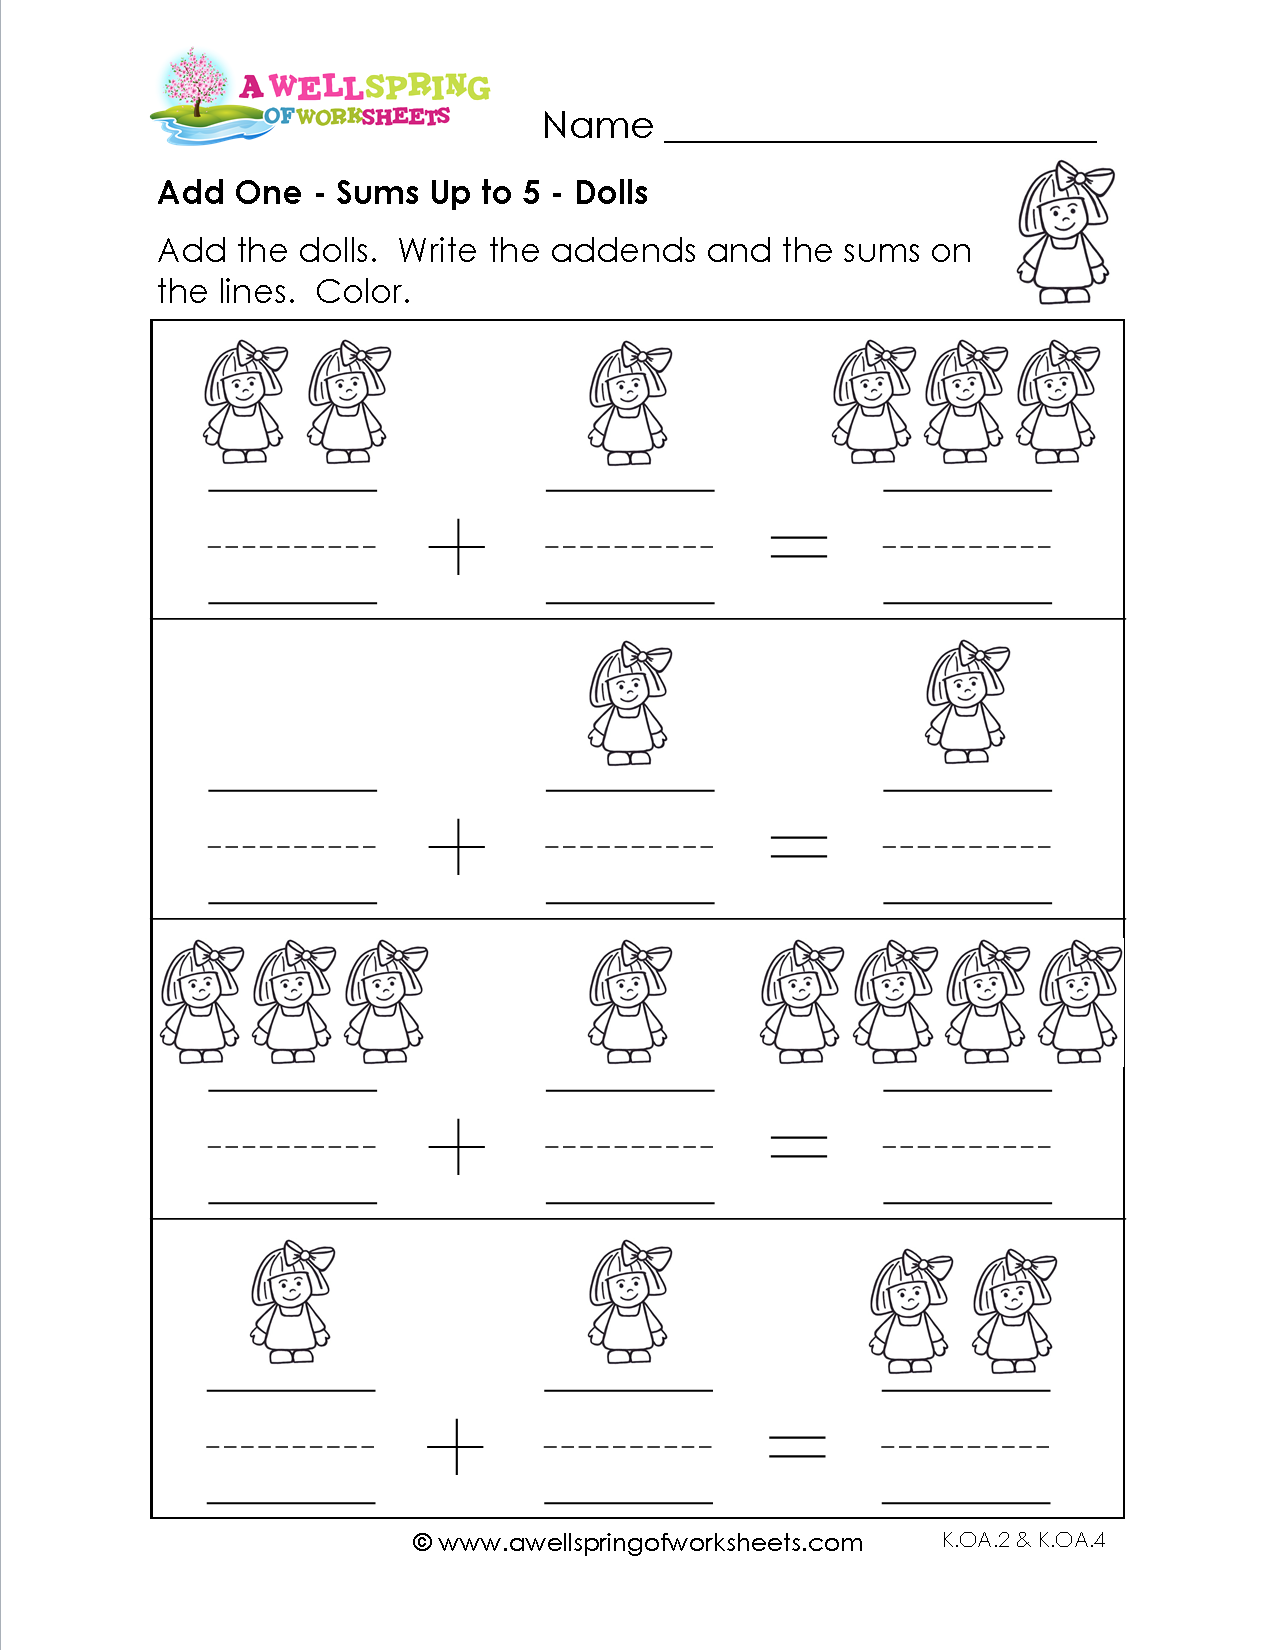 Addition Worksheets With Pictures For Grade 1   Wallpaper Site [ 1650 x 1275 Pixel ]